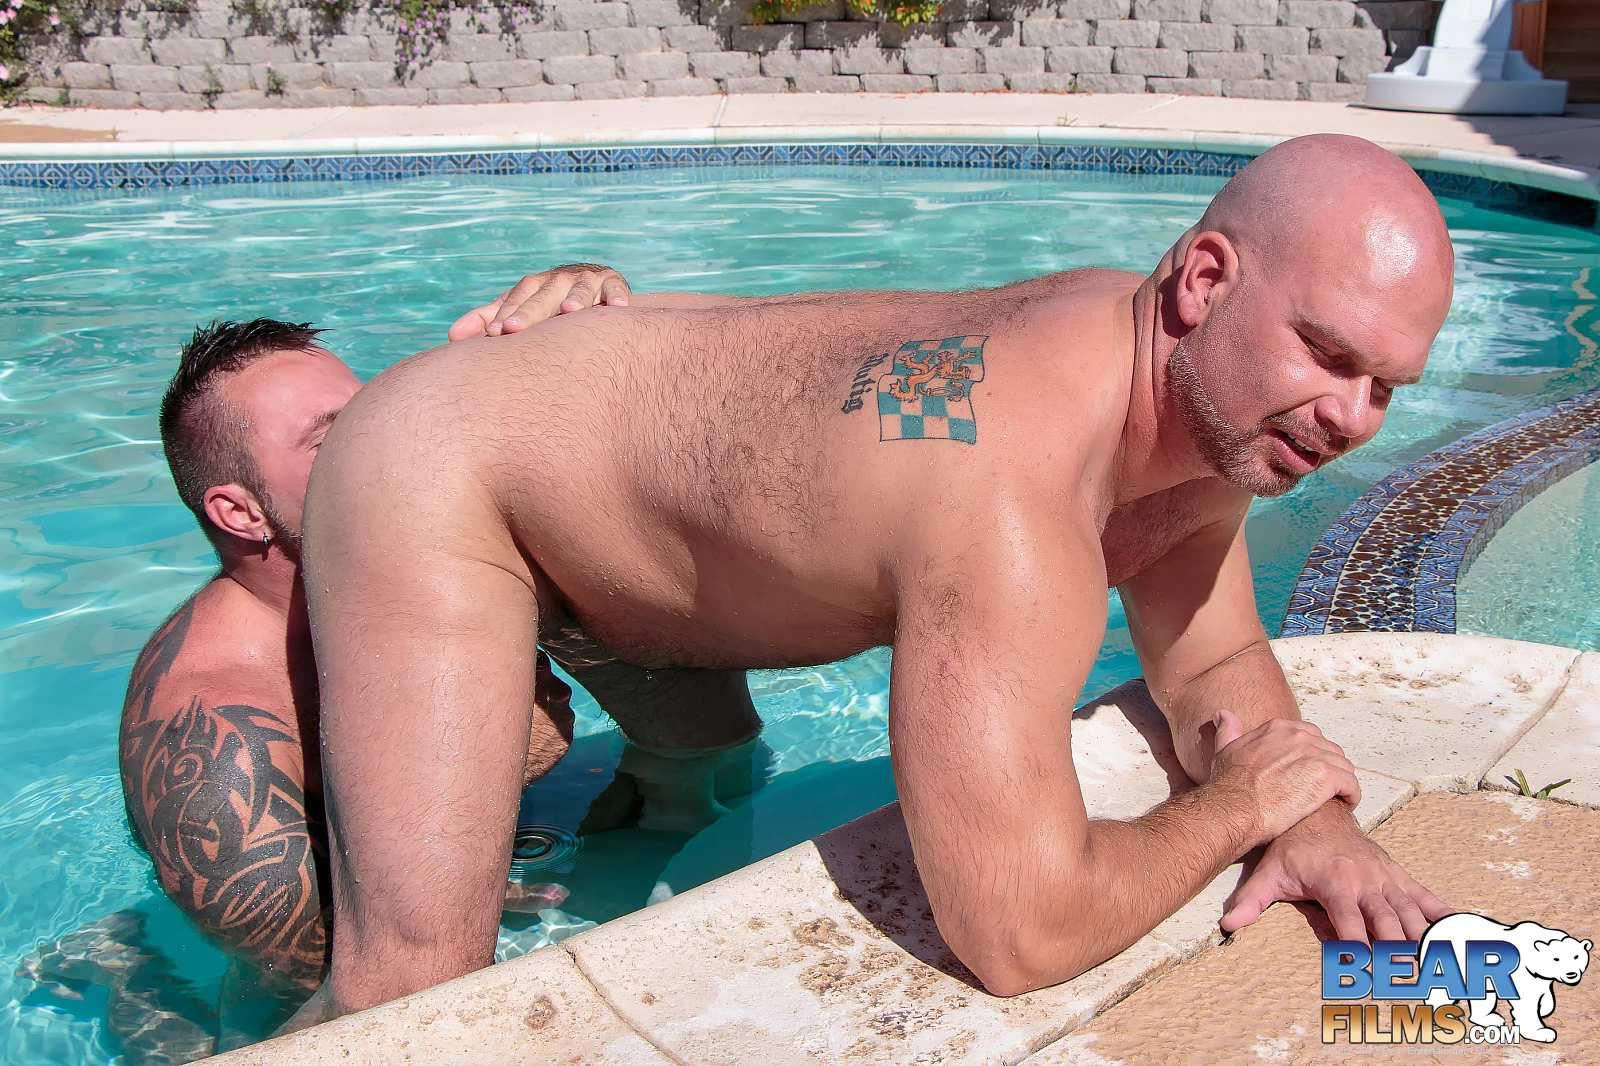 Bear-Films-Marc-Angelo-and-Wade-Cashen-Hairy-Muscle-Bears-Fucking-Bearback-Amateur-Gay-Porn-10 Hairy Muscle Bears Fucking Bareback At The Pool